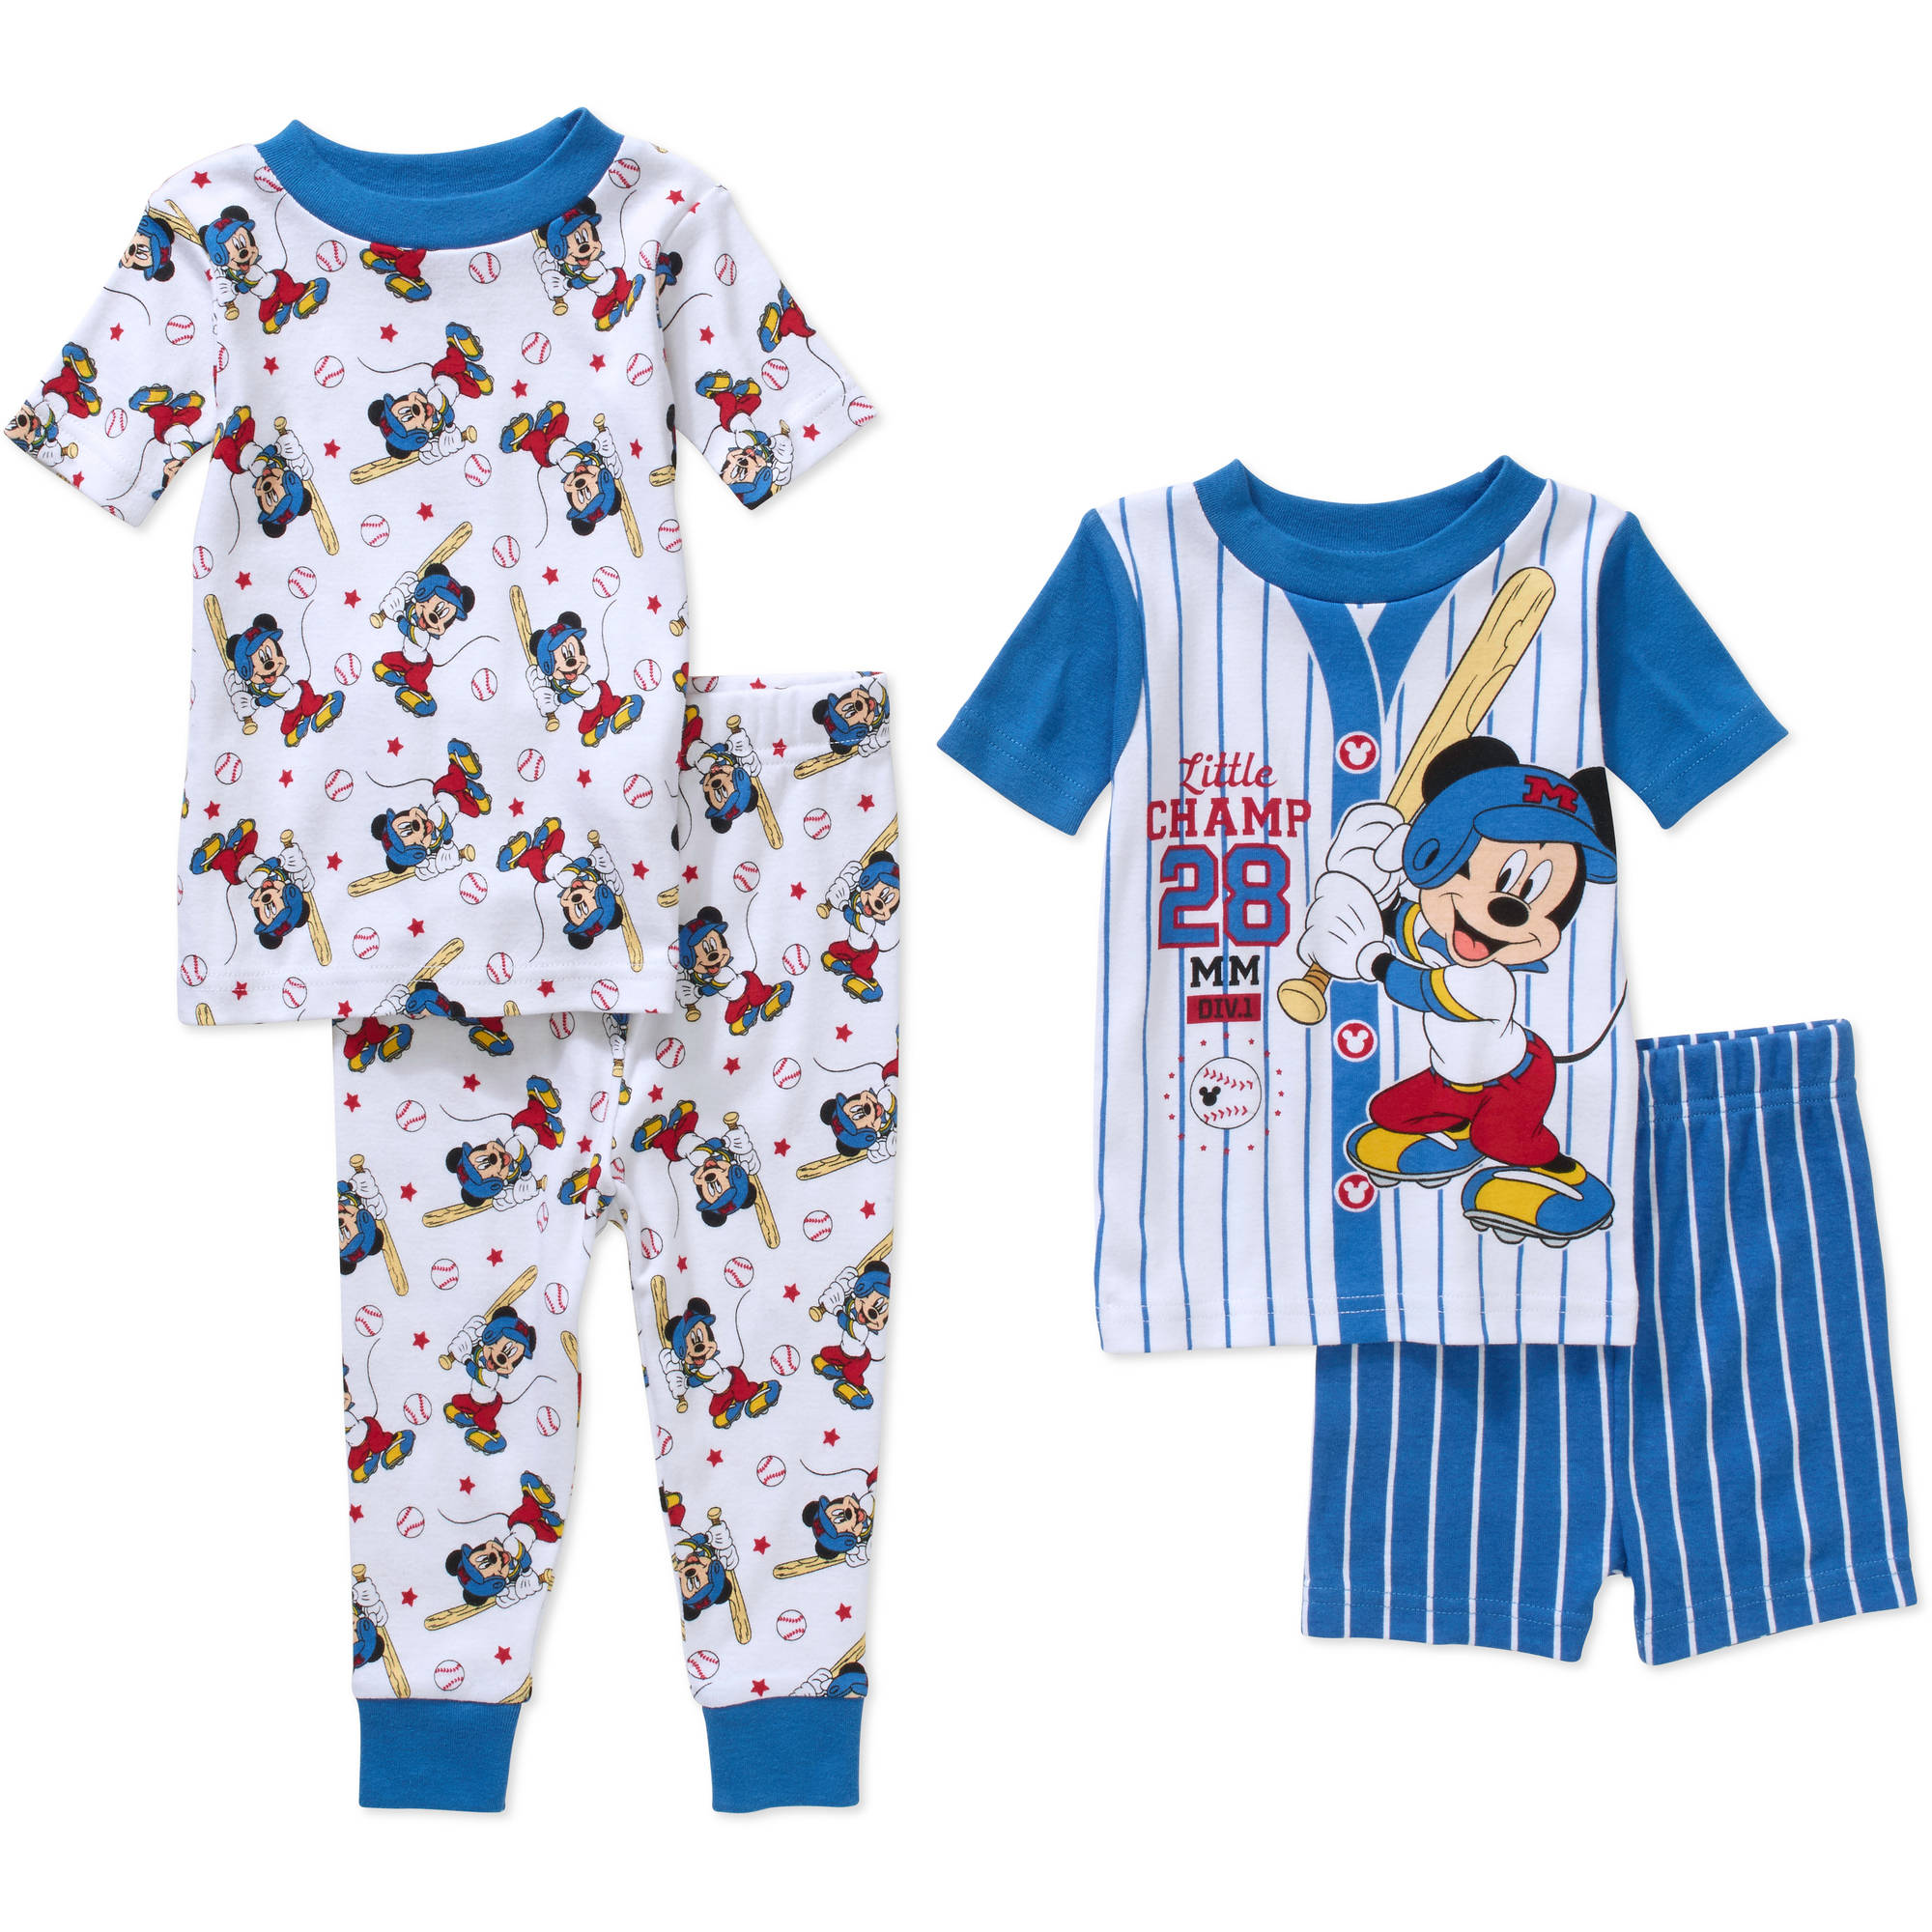 Shop for Boys Pajama Sets in Boys Pajamas & Robes. Buy products such as Cotton Tight Fit Pajamas, 4-piece Set (Toddler Boys) at Walmart and save.